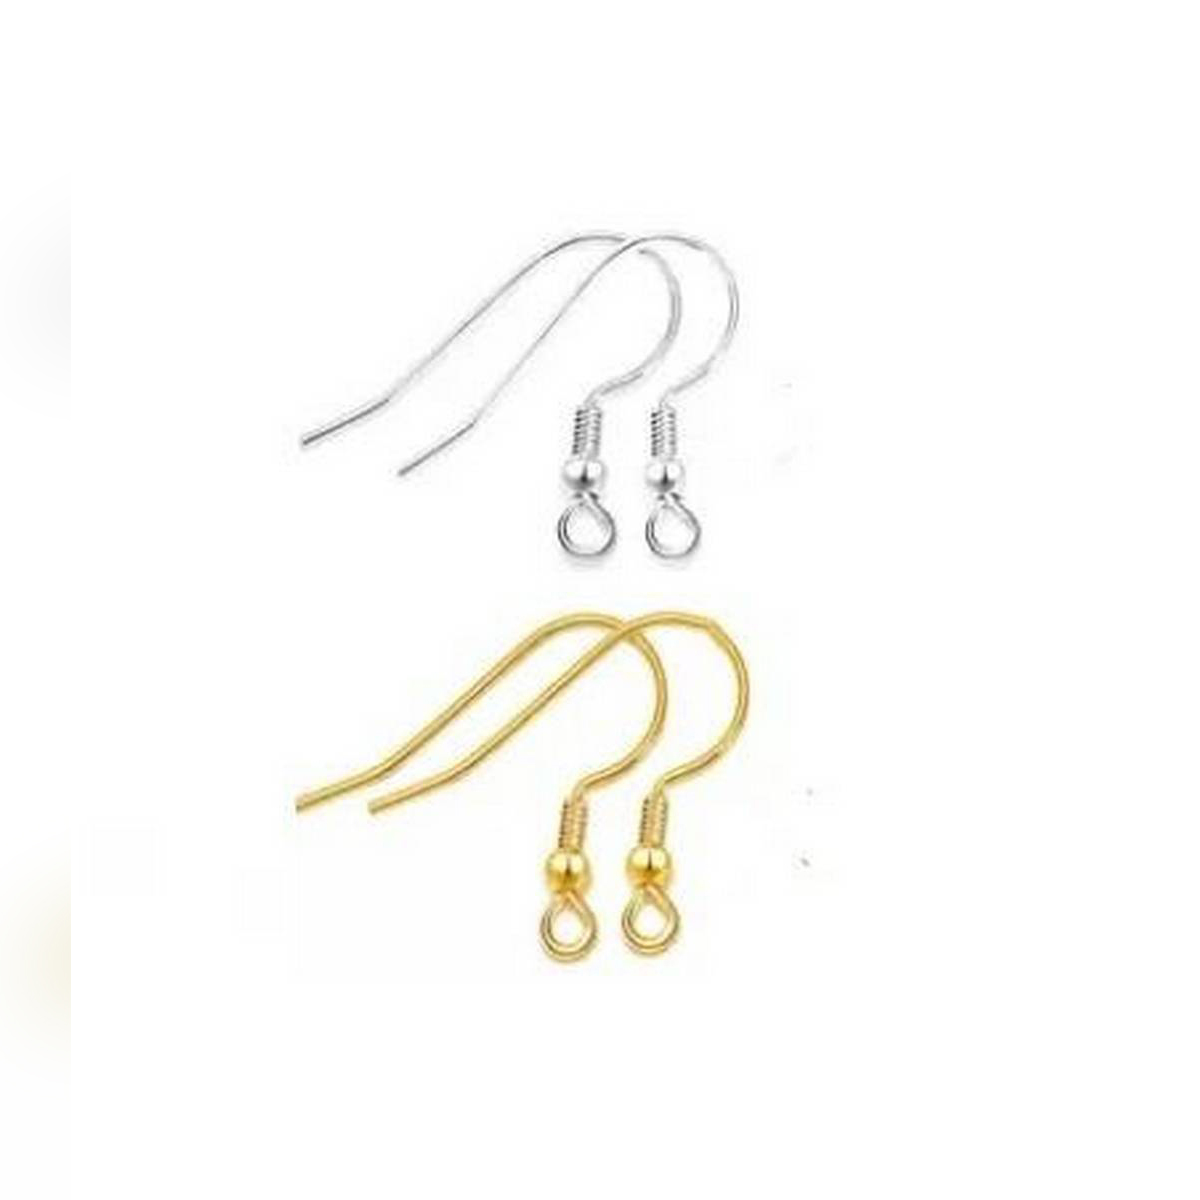 100 Pairs Of Golden & Silver Earrings Hooks Base For Jewellery Making